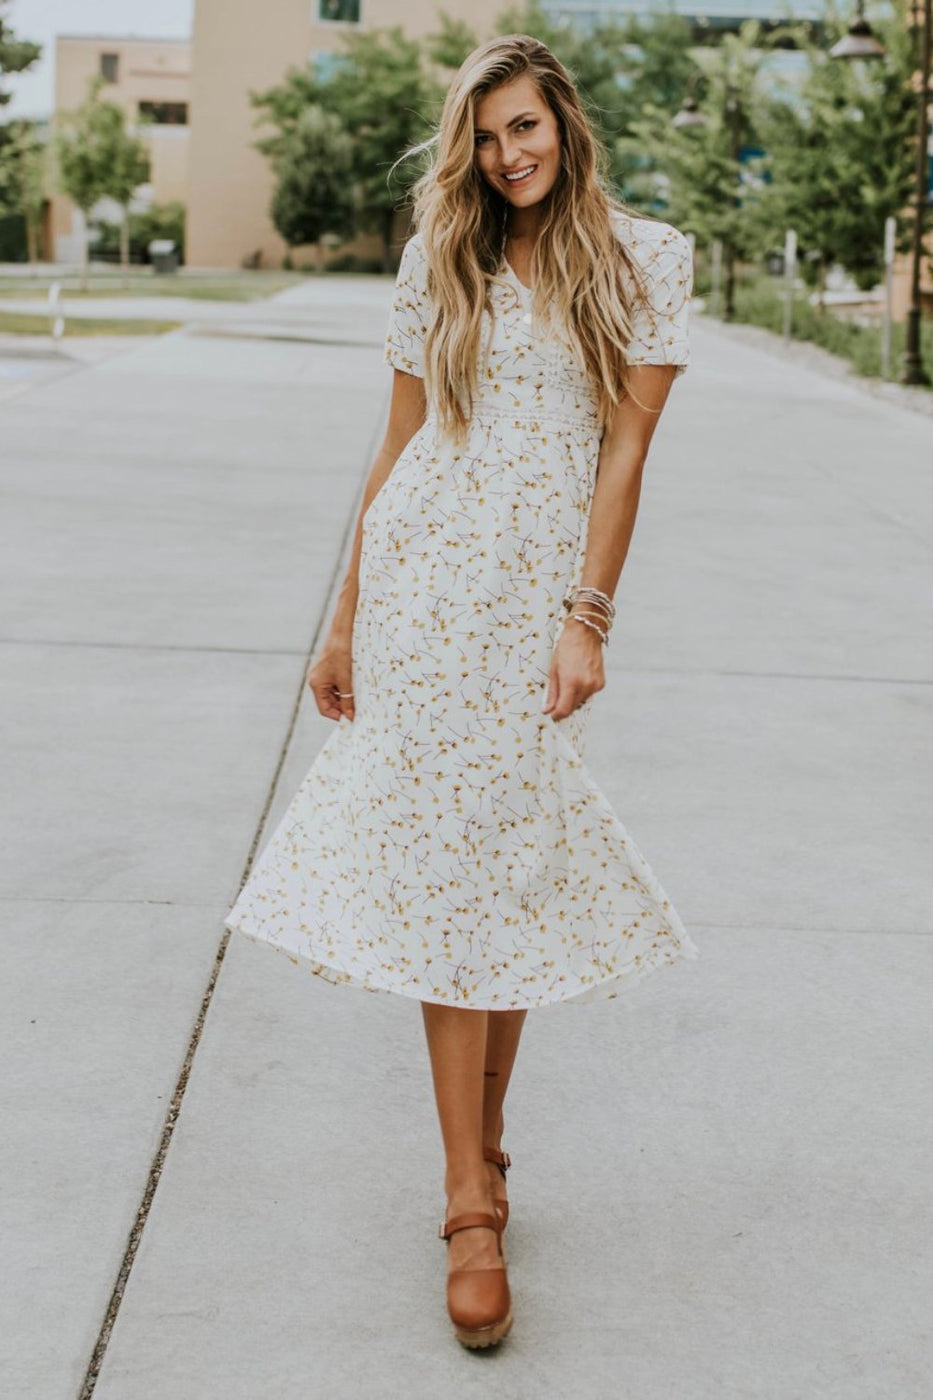 White + Yellow Floral Print Dress | ROOLEE